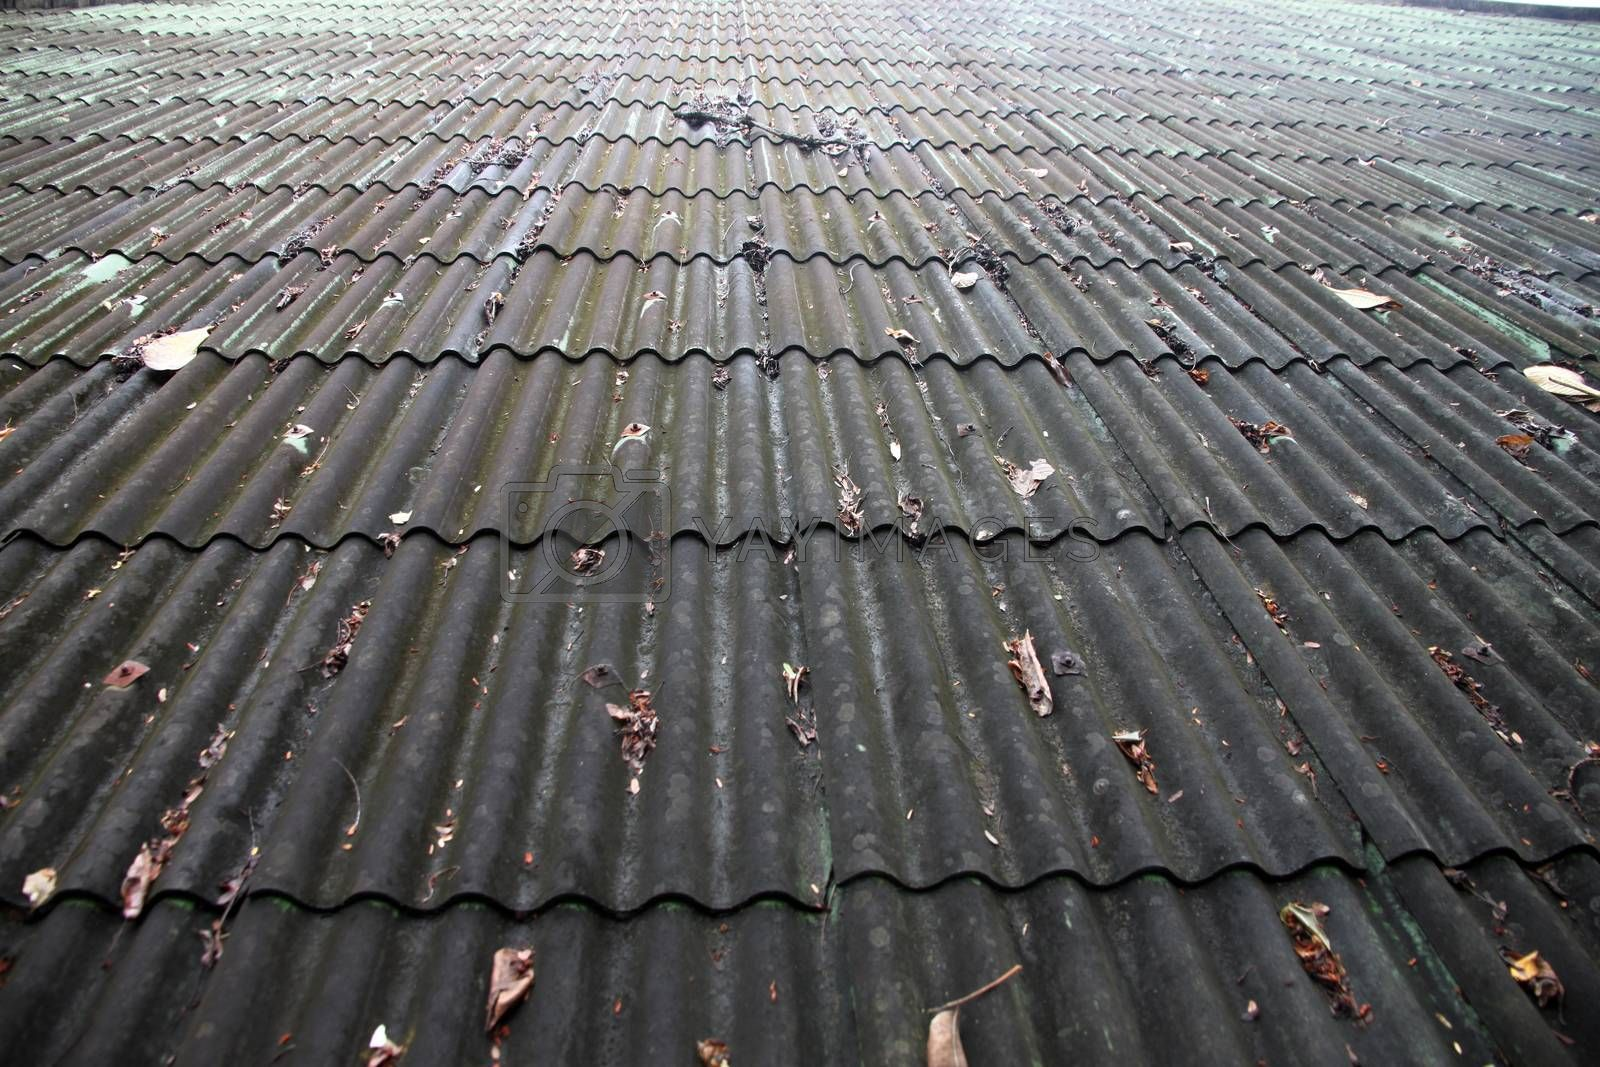 Tile roof of the house is very old and And also algae on roof.